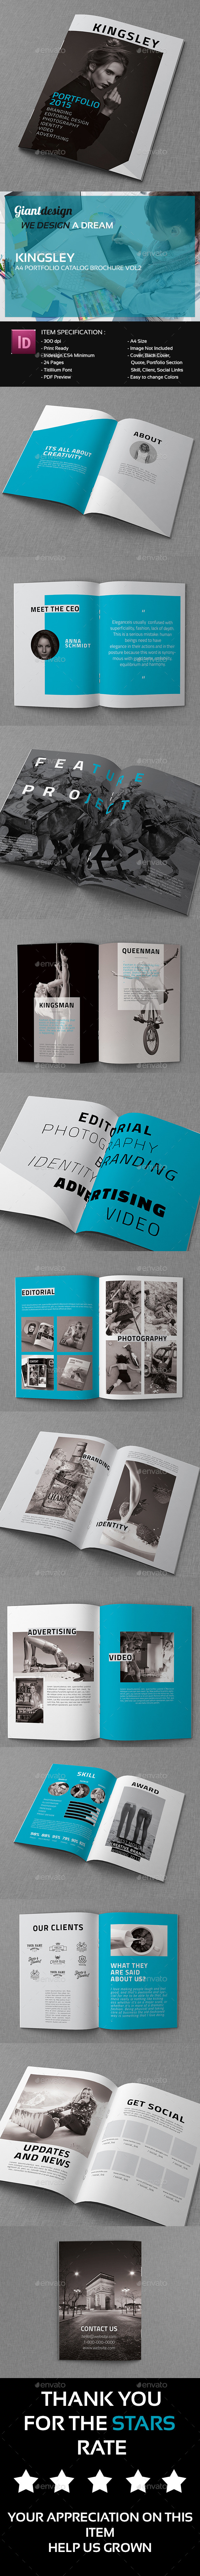 GraphicRiver Kingsley A4 Portfolio Catalog Brochure Vol 2 10436021